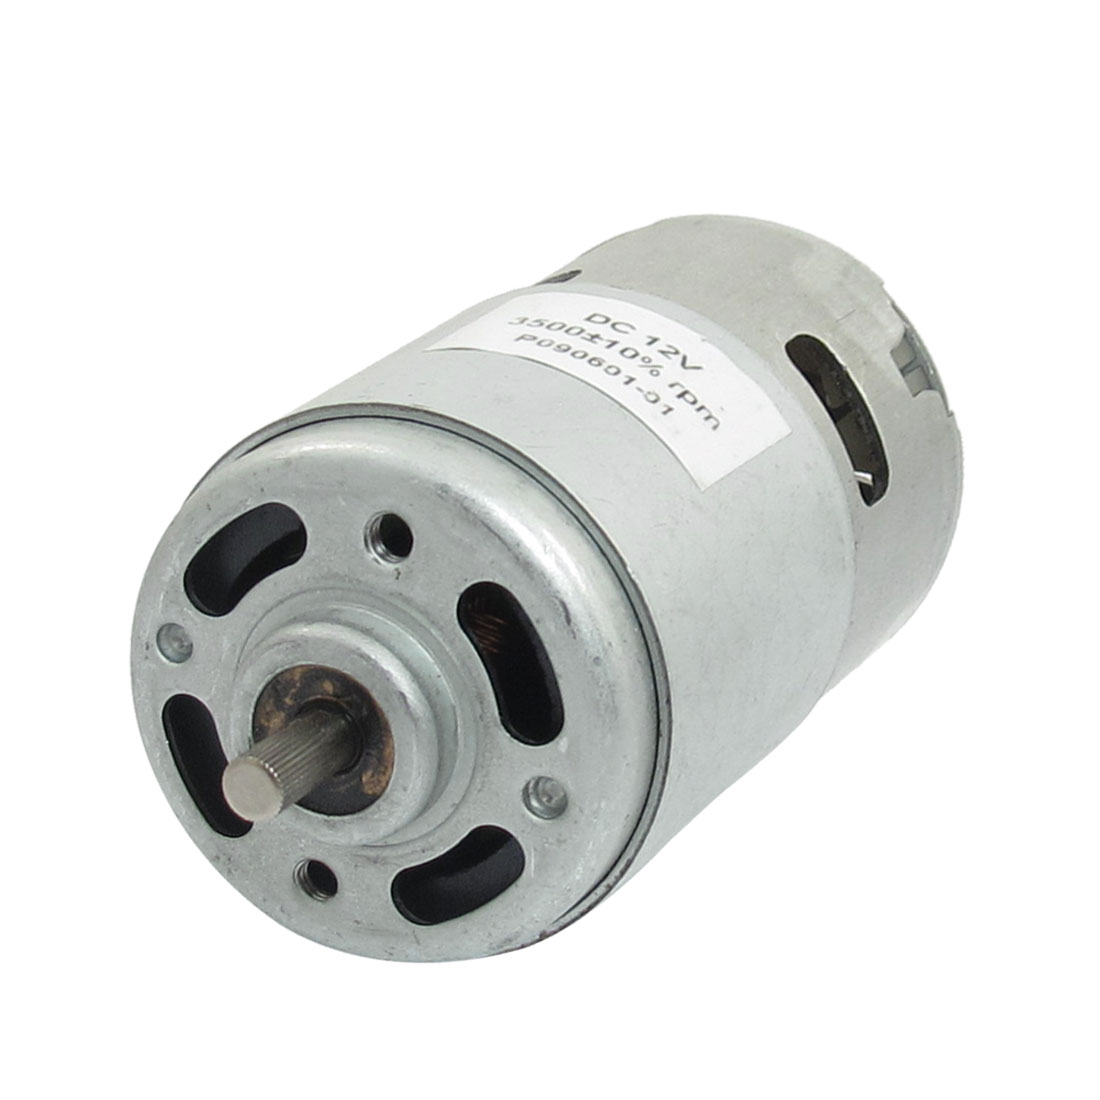 3500 RPM 12V High Torque Cylinder Magnetic Electric Mini DC Motor